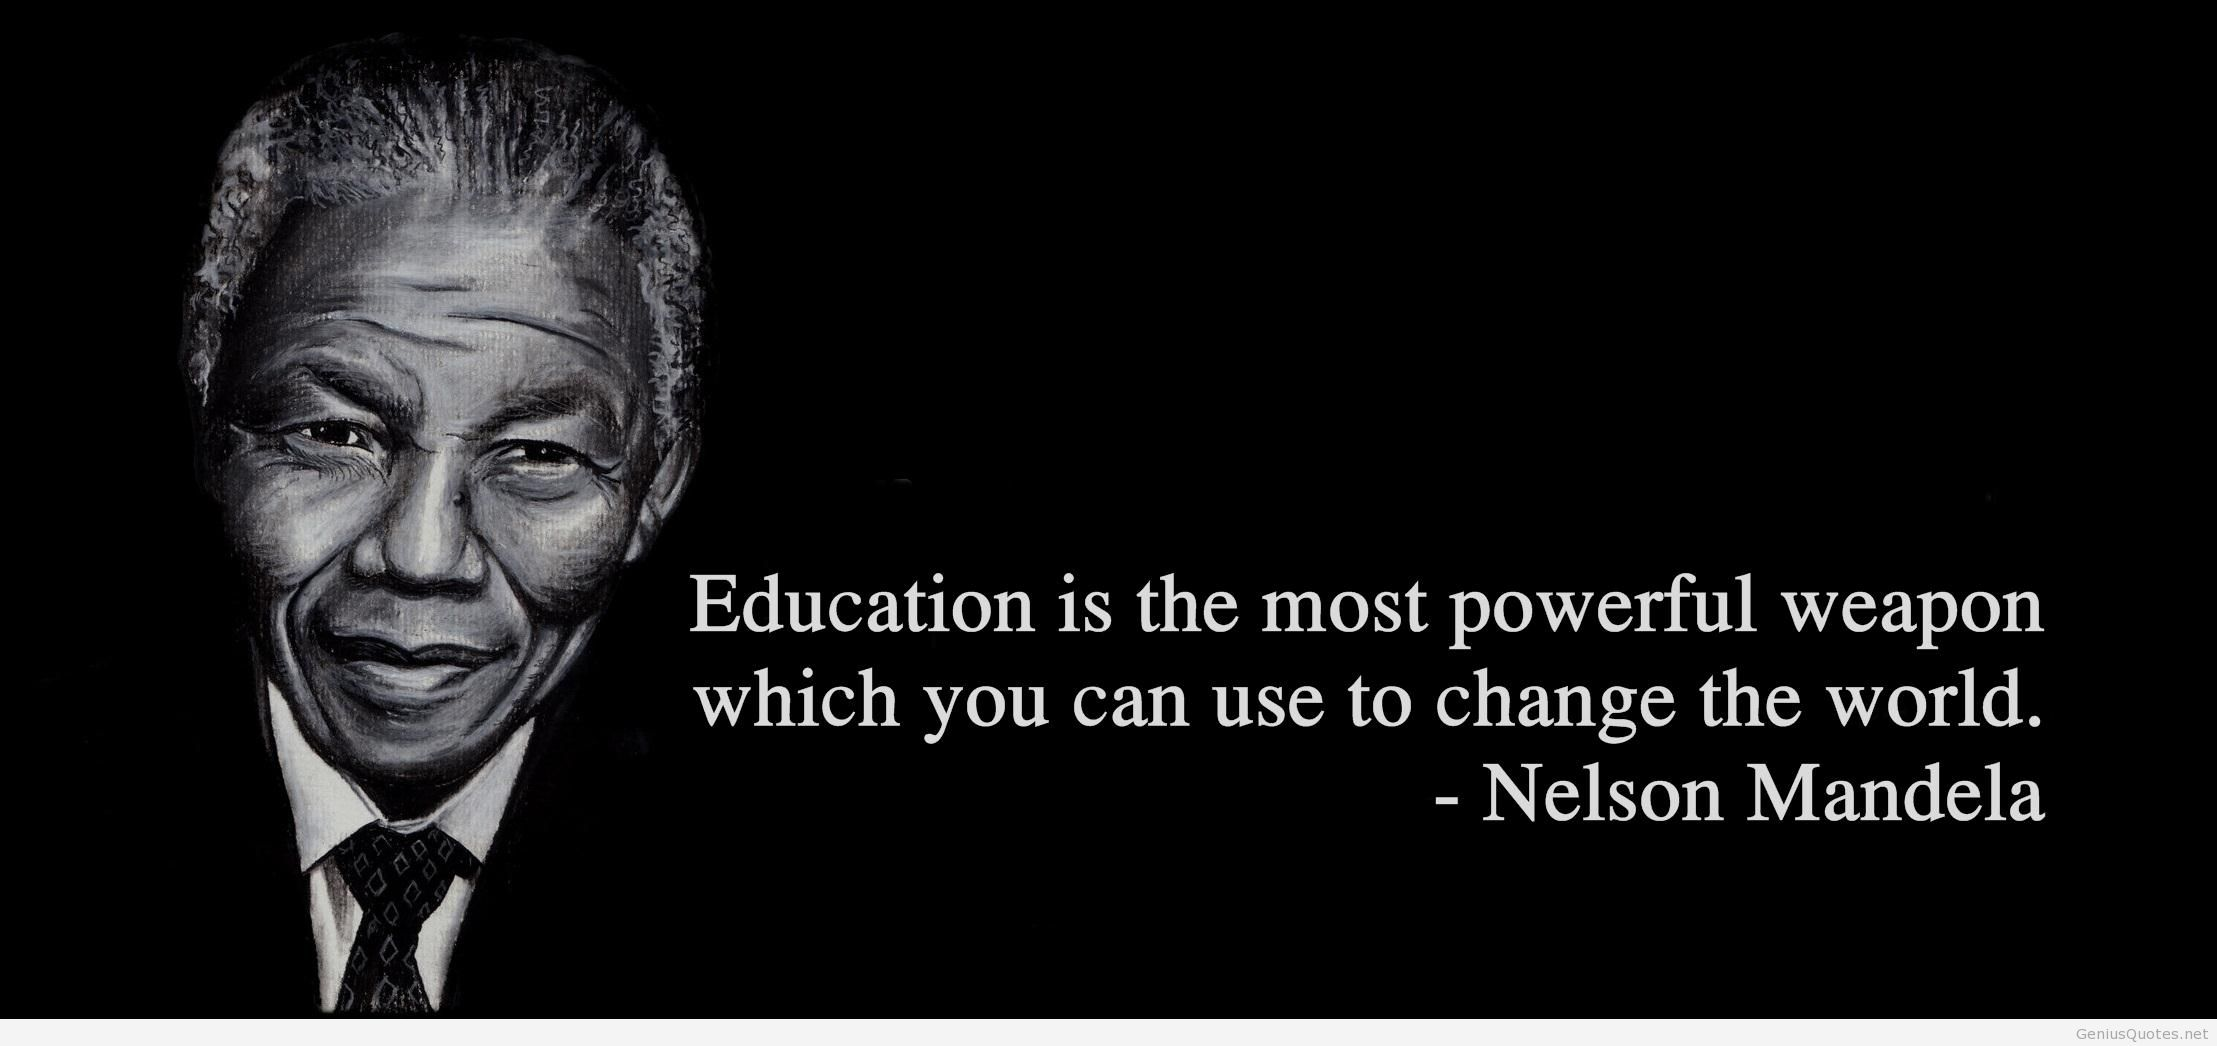 Happy Nelson Mandela Day Quotes Sayings Images Whatsapp Status 2018